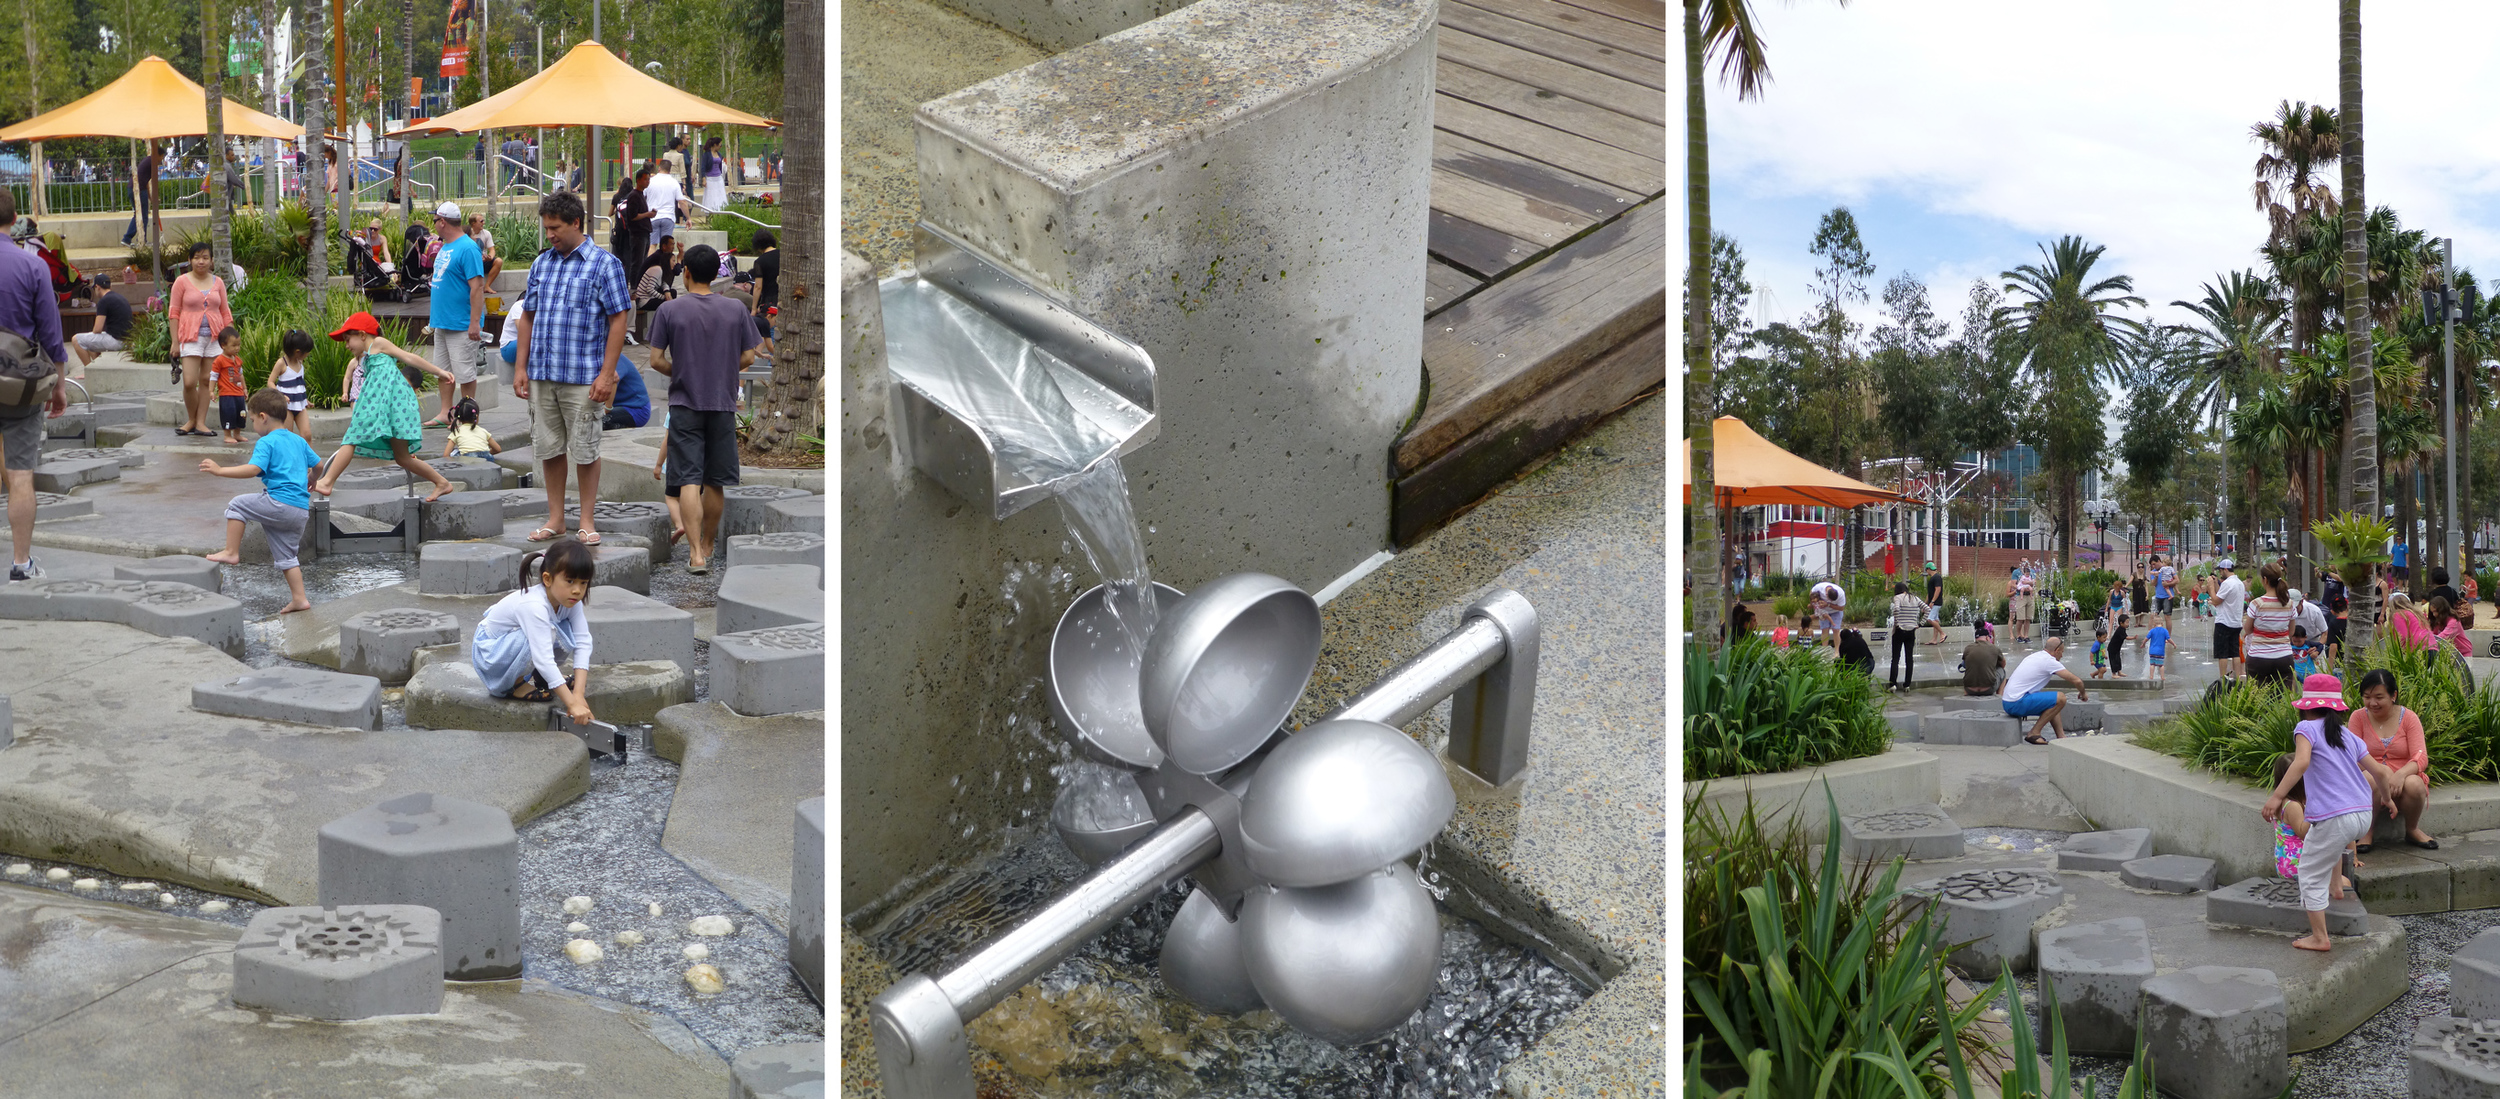 Meanwhile outside its a sunny day, perfect for families playing in the new water feature at Darling Harbour.